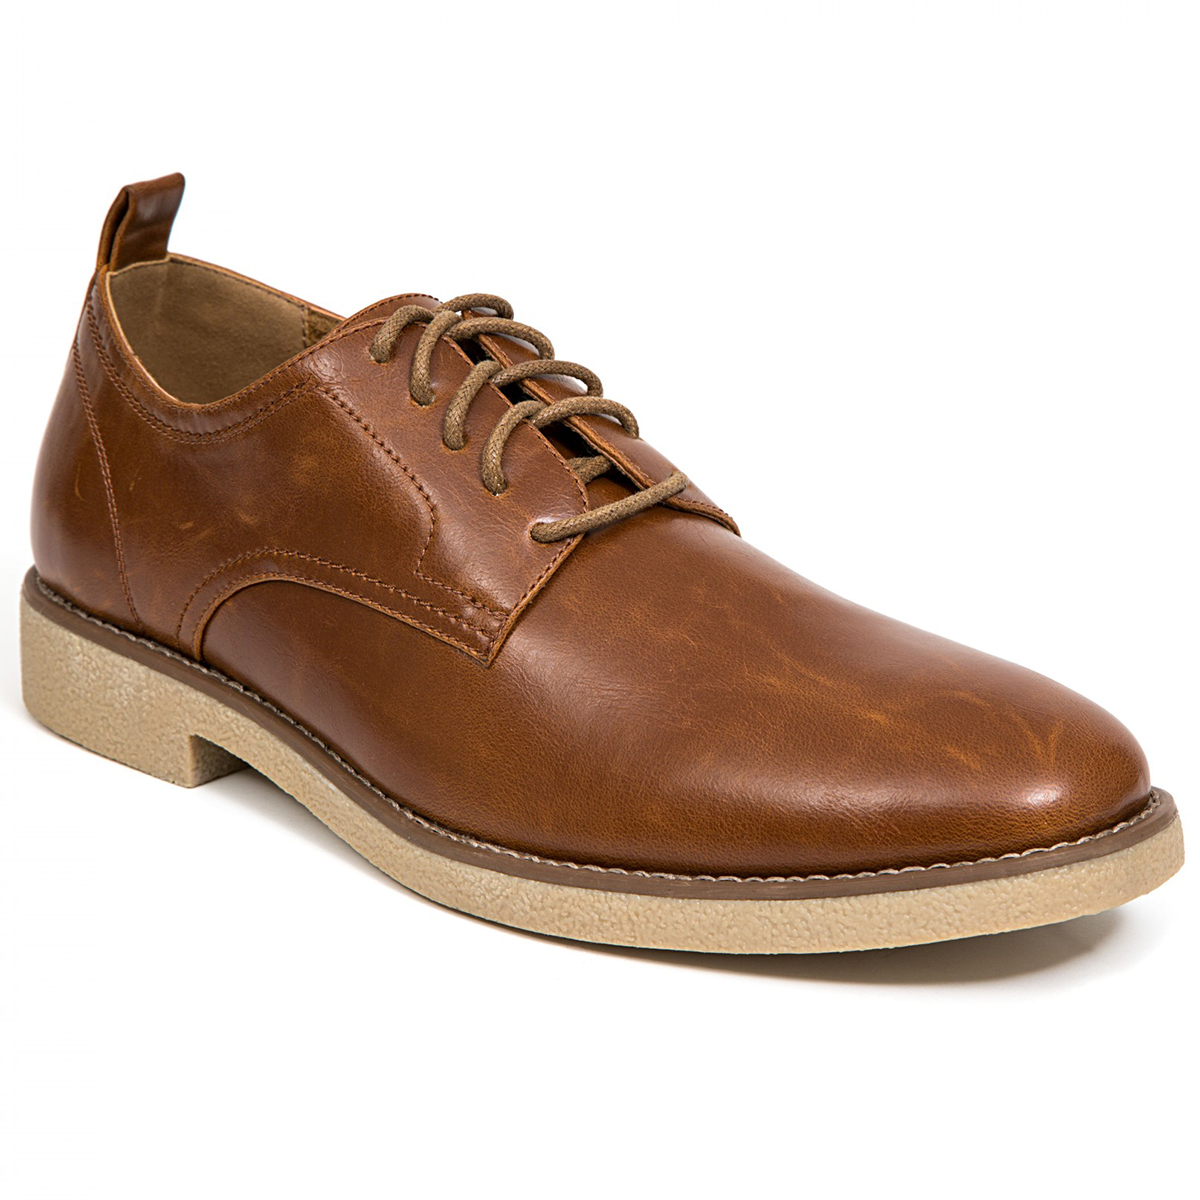 Deer Stags Men's Highland Lace-Up Oxford Dress Shoes - Brown, 12